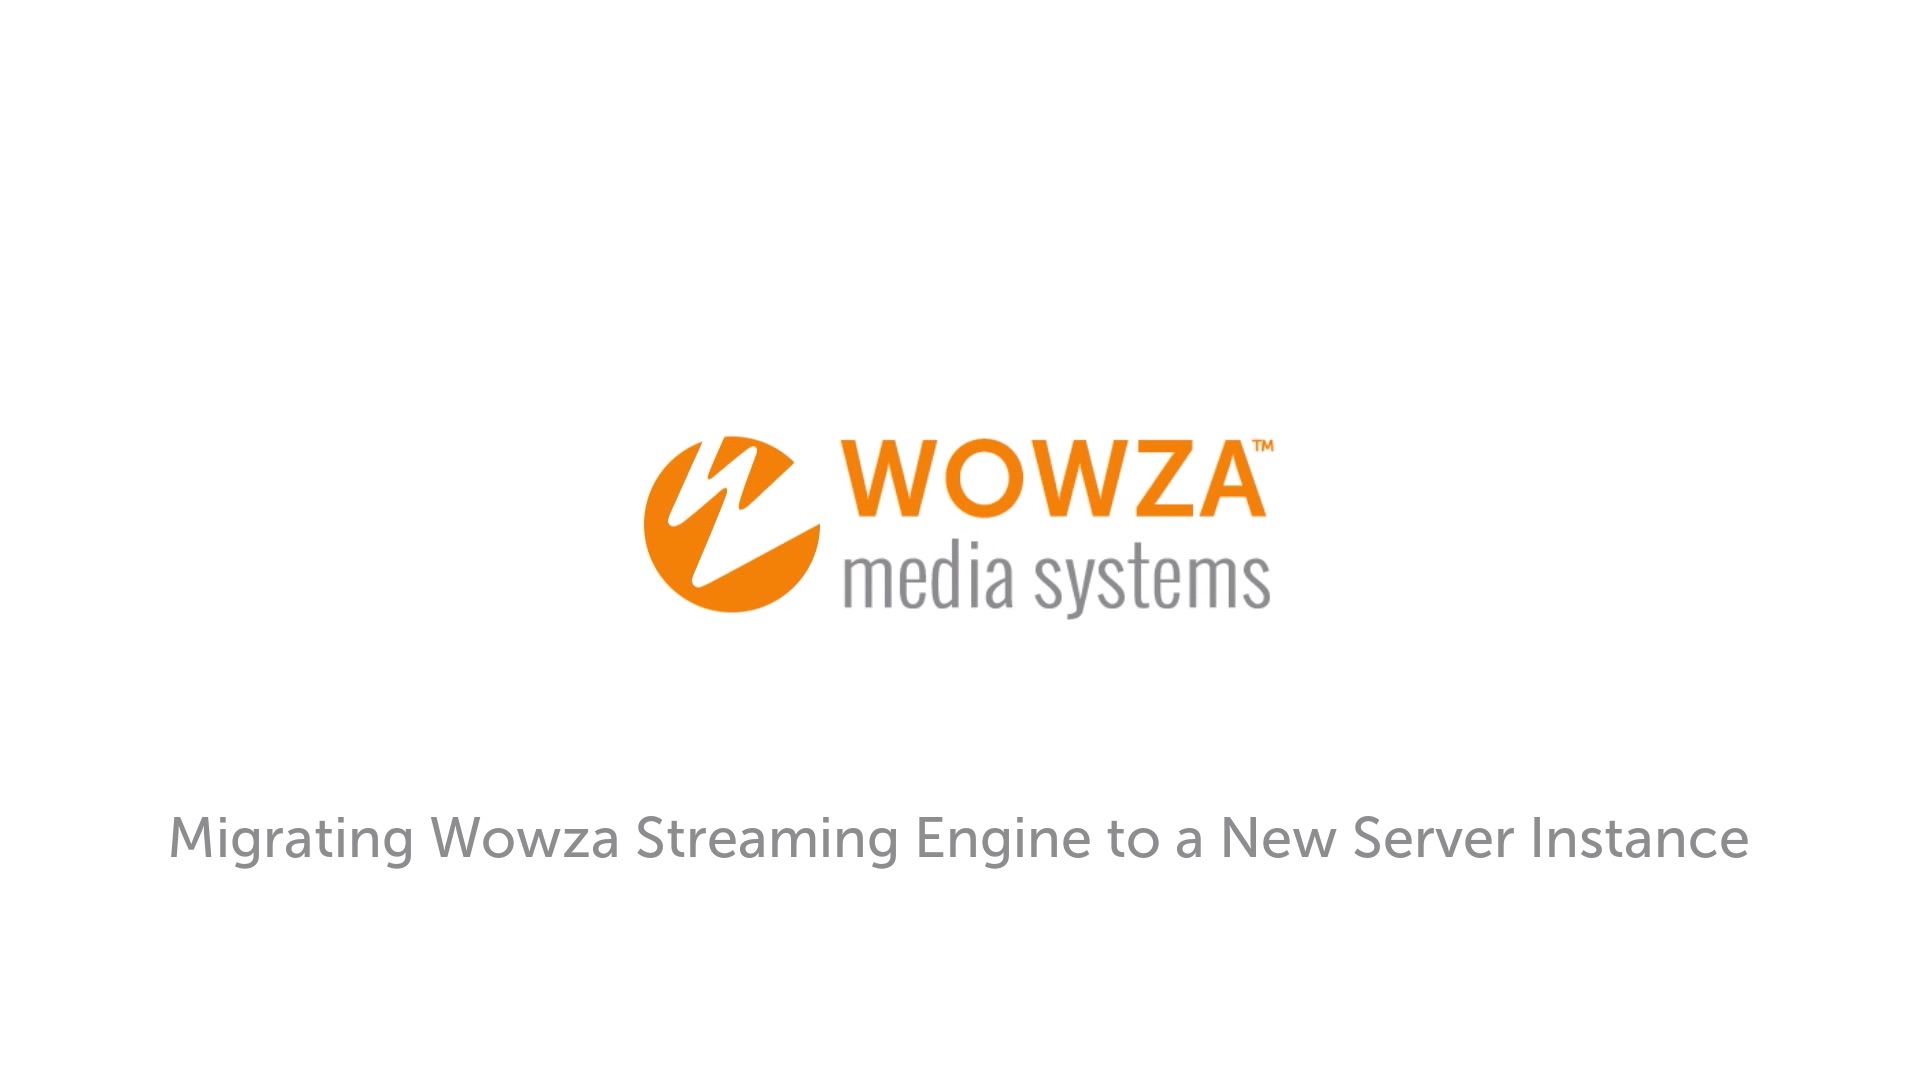 Migrate Wowza Streaming Engine to new instance